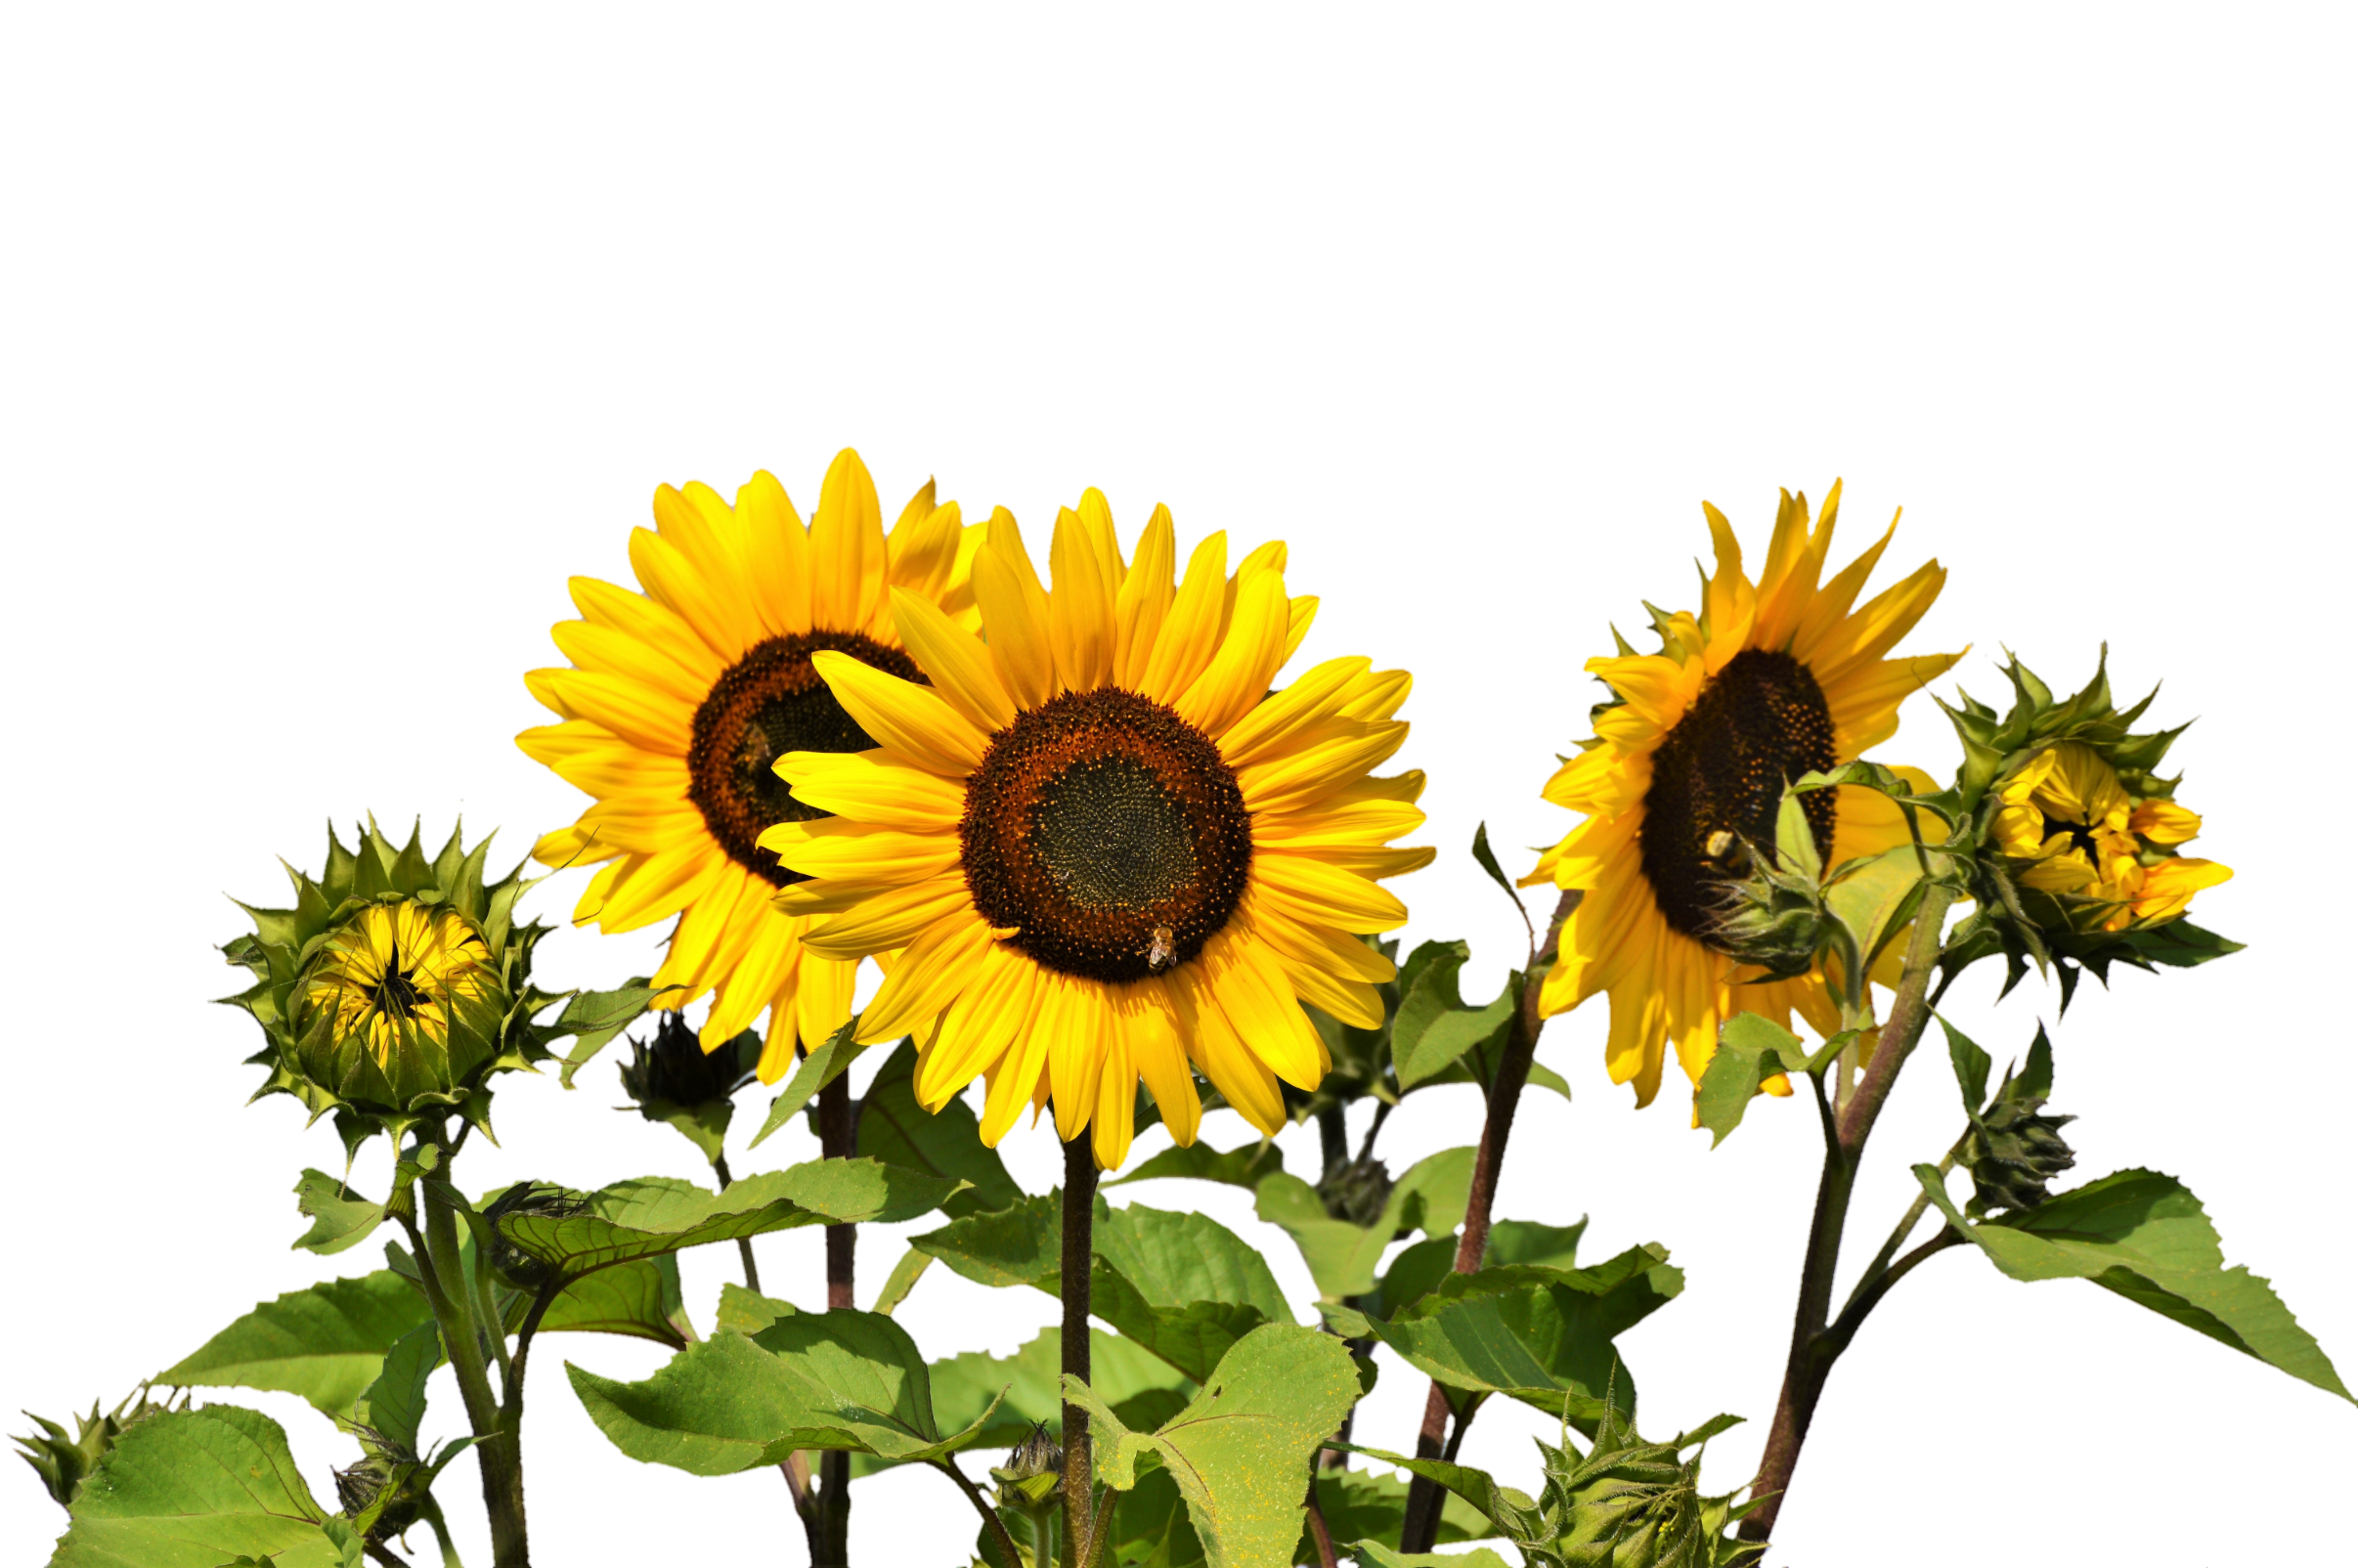 Sunflower Pngs - Sunflowers PNG Image - PurePNG | Free transparent CC0 PNG Image ...